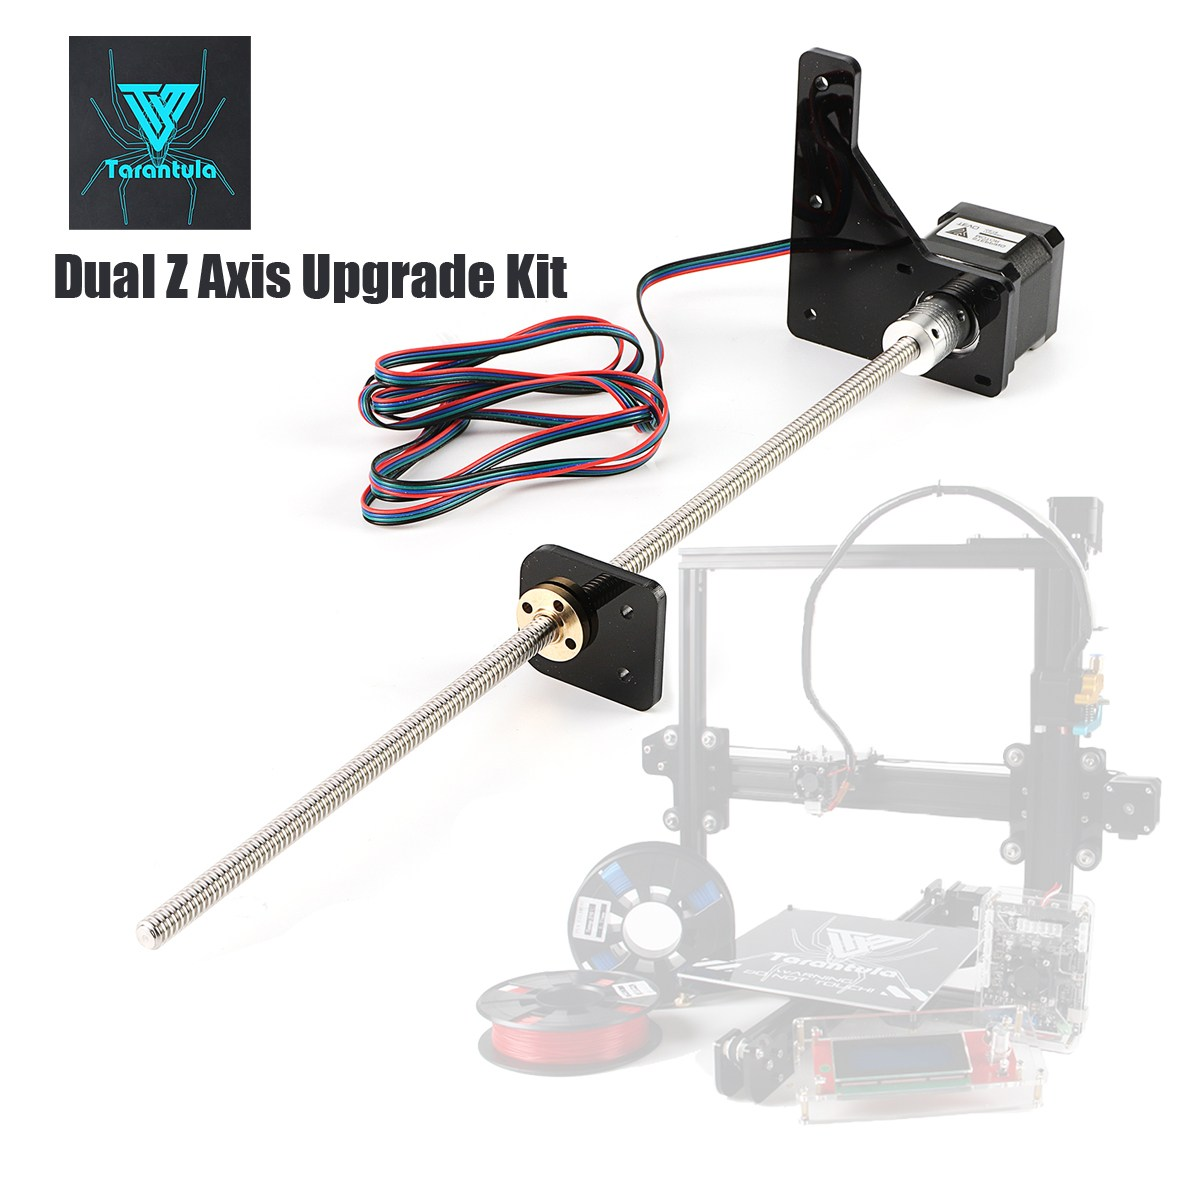 TEVO Tarantula Dual Z Axis Upgrade Kit Nema 42 Step Motor and T8*2 Lead Screw 375 mm 8mm with Brass Copper for 3D Printer Part-in 3D Printer Parts & Accessories from Computer & Office    1